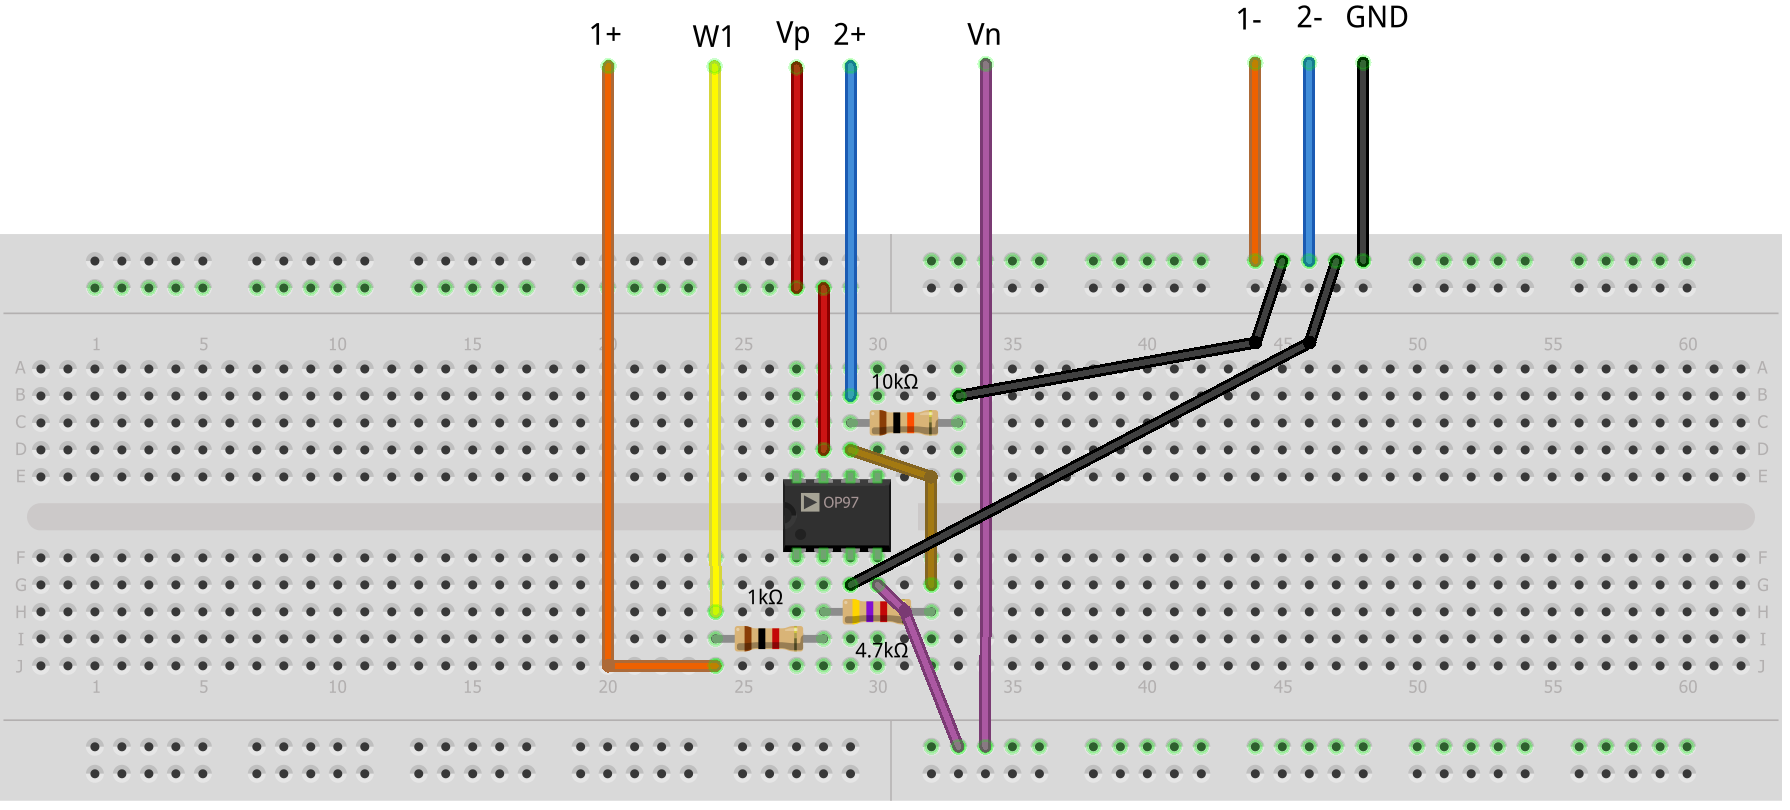 Circuit Diagram Using Breadboard Wiring Library Led Clock Design On Fritzing Barkeng Mad Inverting Amplifier